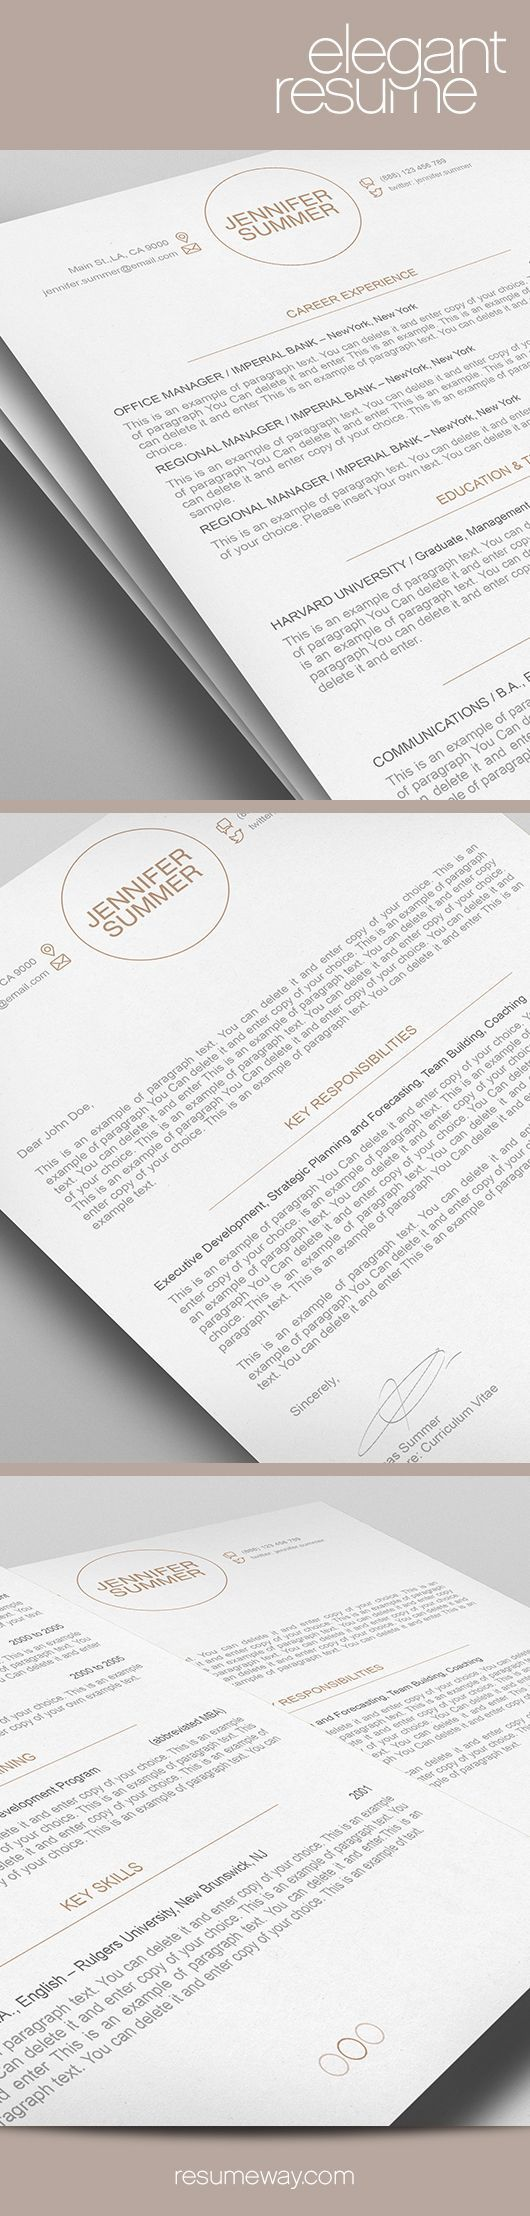 elegant resume template premium line of resume cover letter elegant resume template premium line of resume cover letter templates easy edit